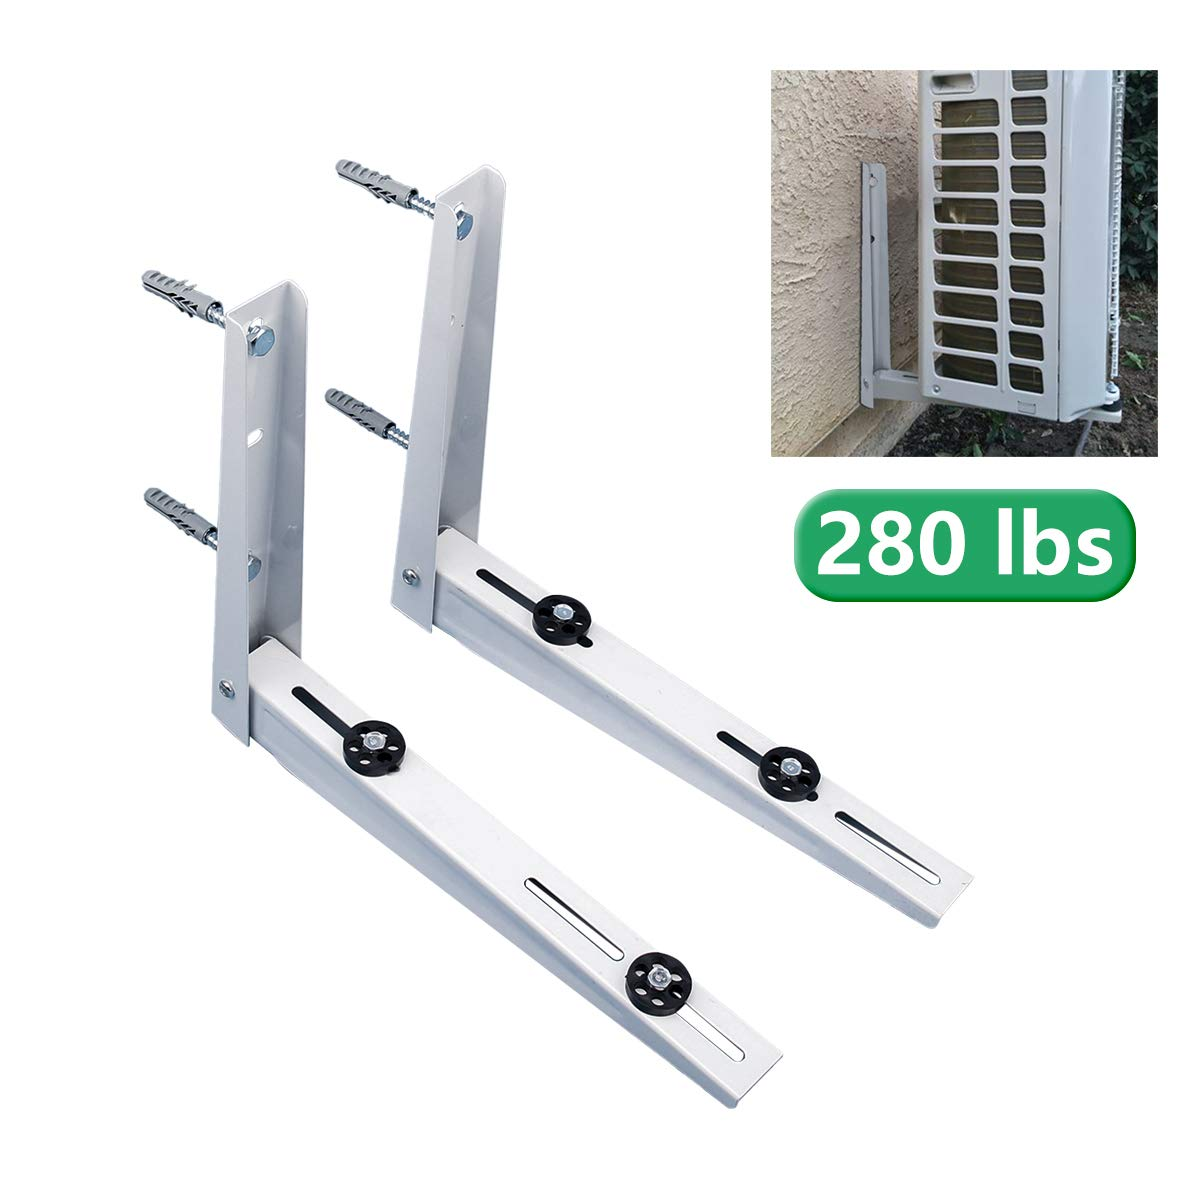 Forestchill Foldable Wall Mount Bracket, fits Mini Split Ductless Outdoor Unit Air Conditioner Condensing Unit Heat Pump System Condenser Universal Design, Support up to 280lbs, 9000-18000 BTU, 1-2P by Forestchill